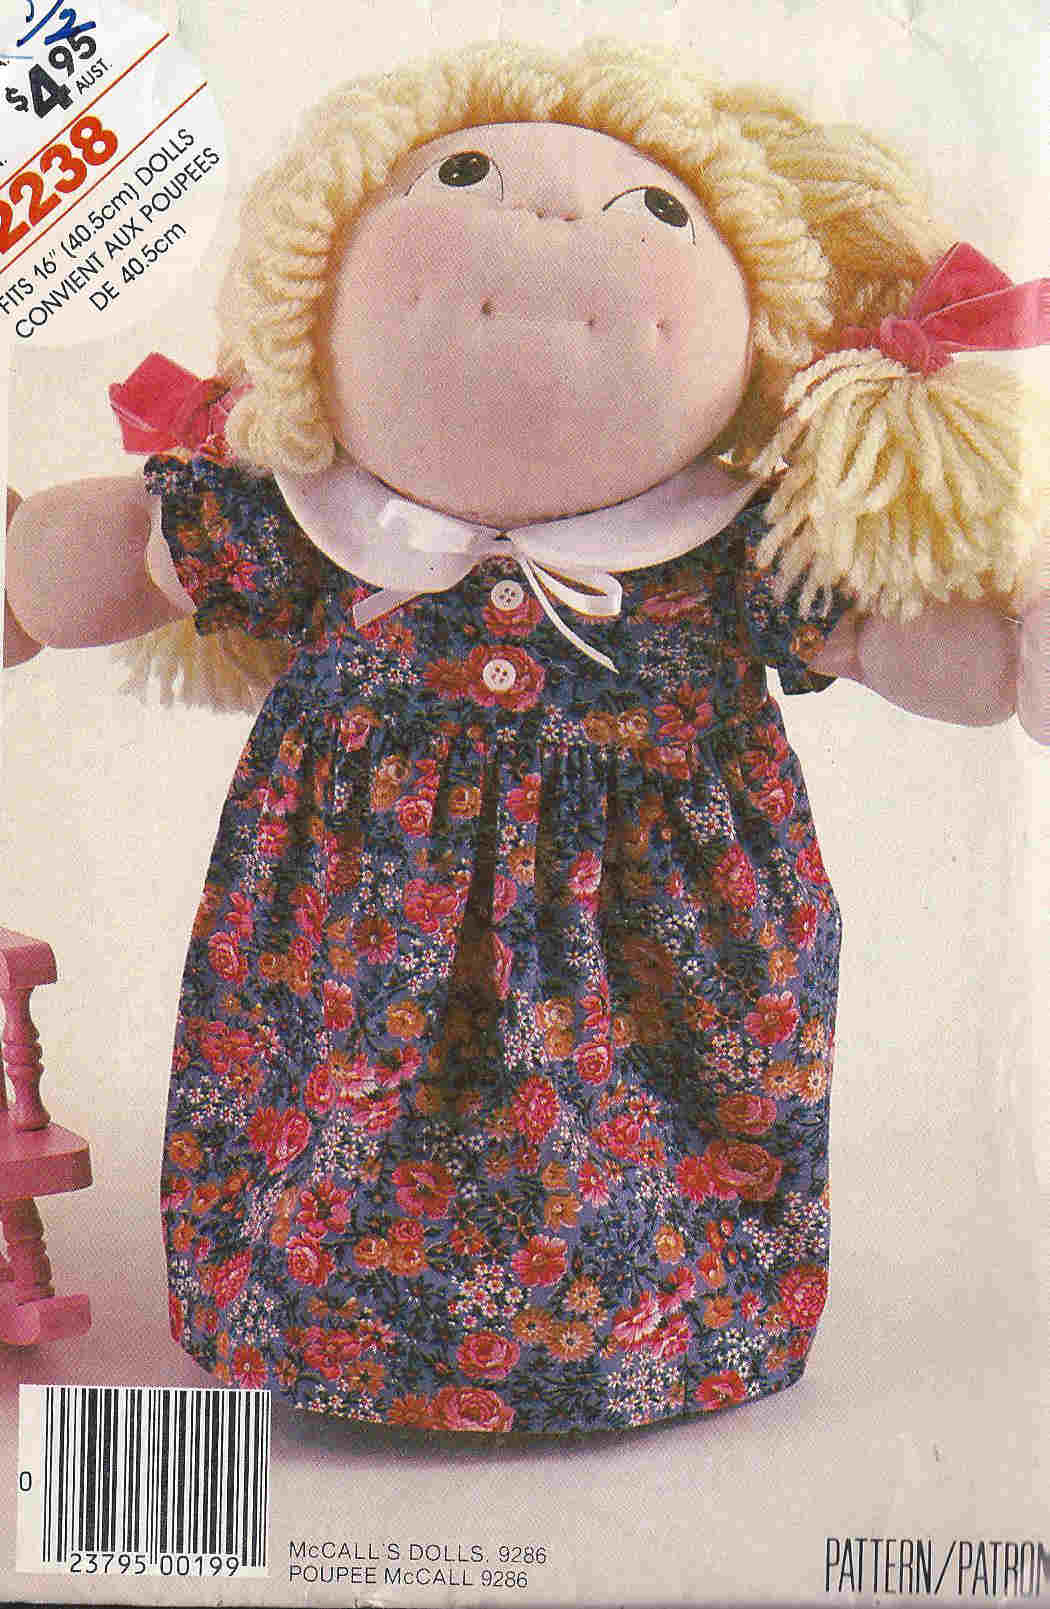 DellaJane Sewing Patterns For Cabbage Patch Kids and Soft Sculpture ...